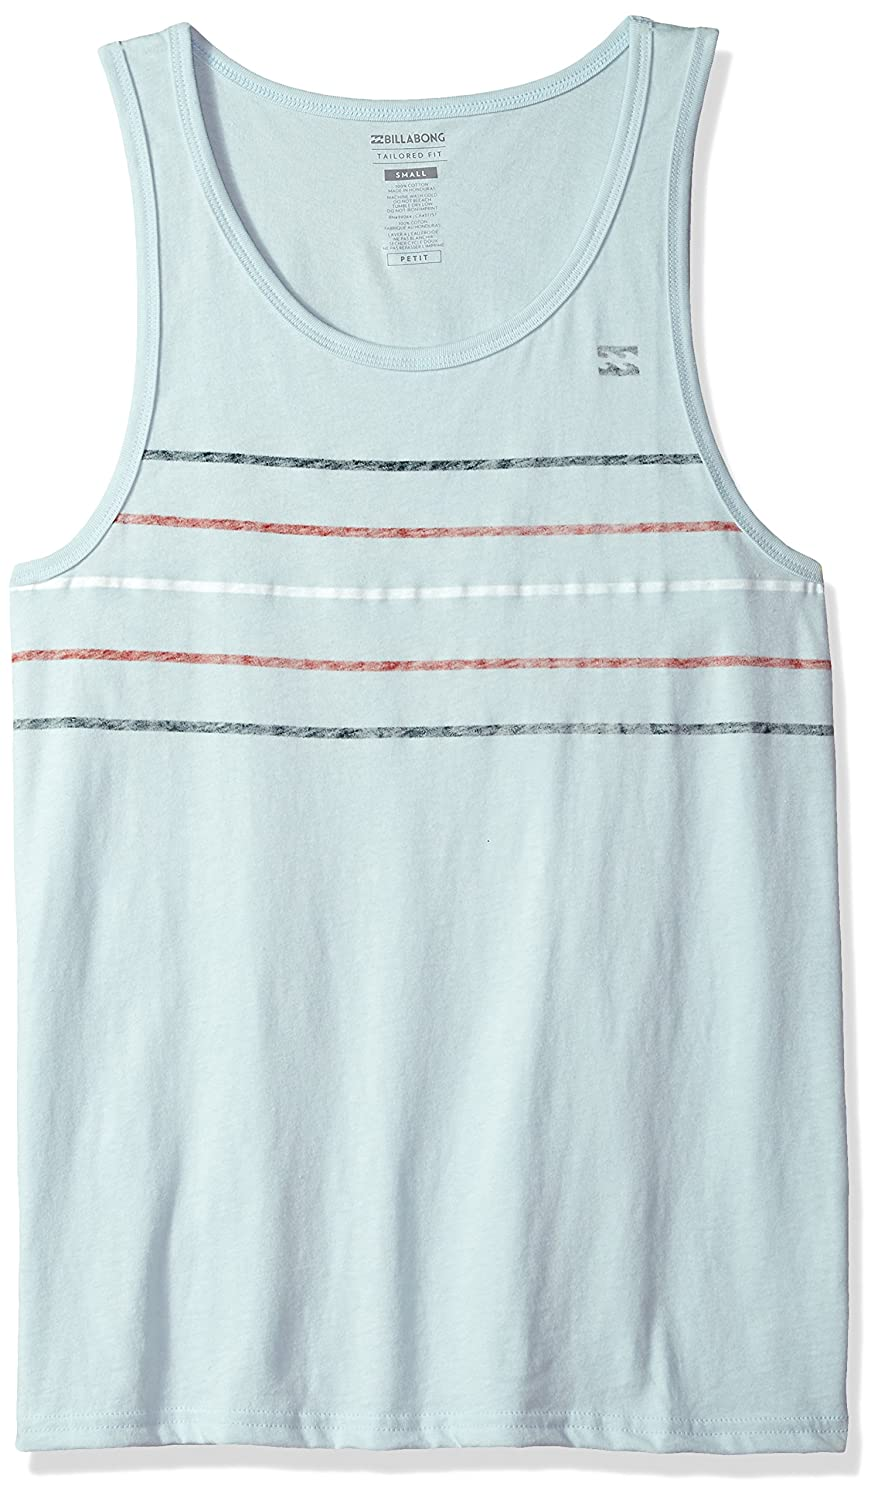 41778c9eef192 Amazon.com  Billabong Men s Team Stripe Tank  Clothing